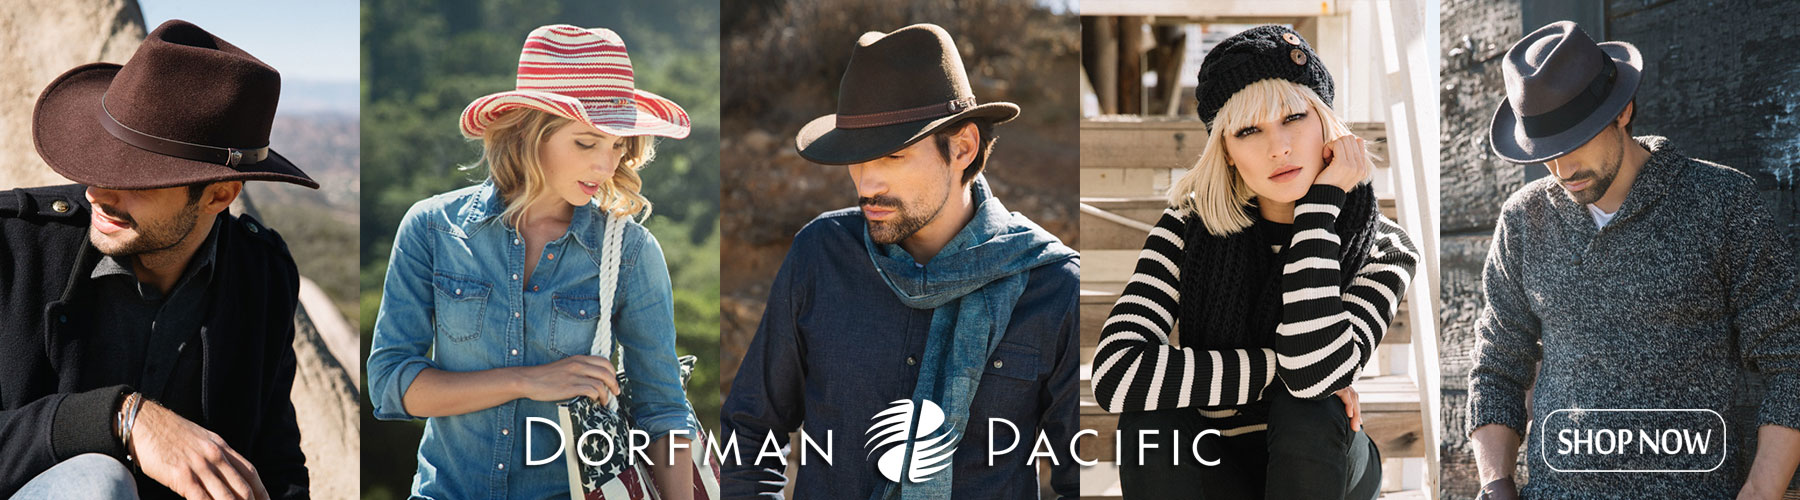 shop now dorfman pacific hats online